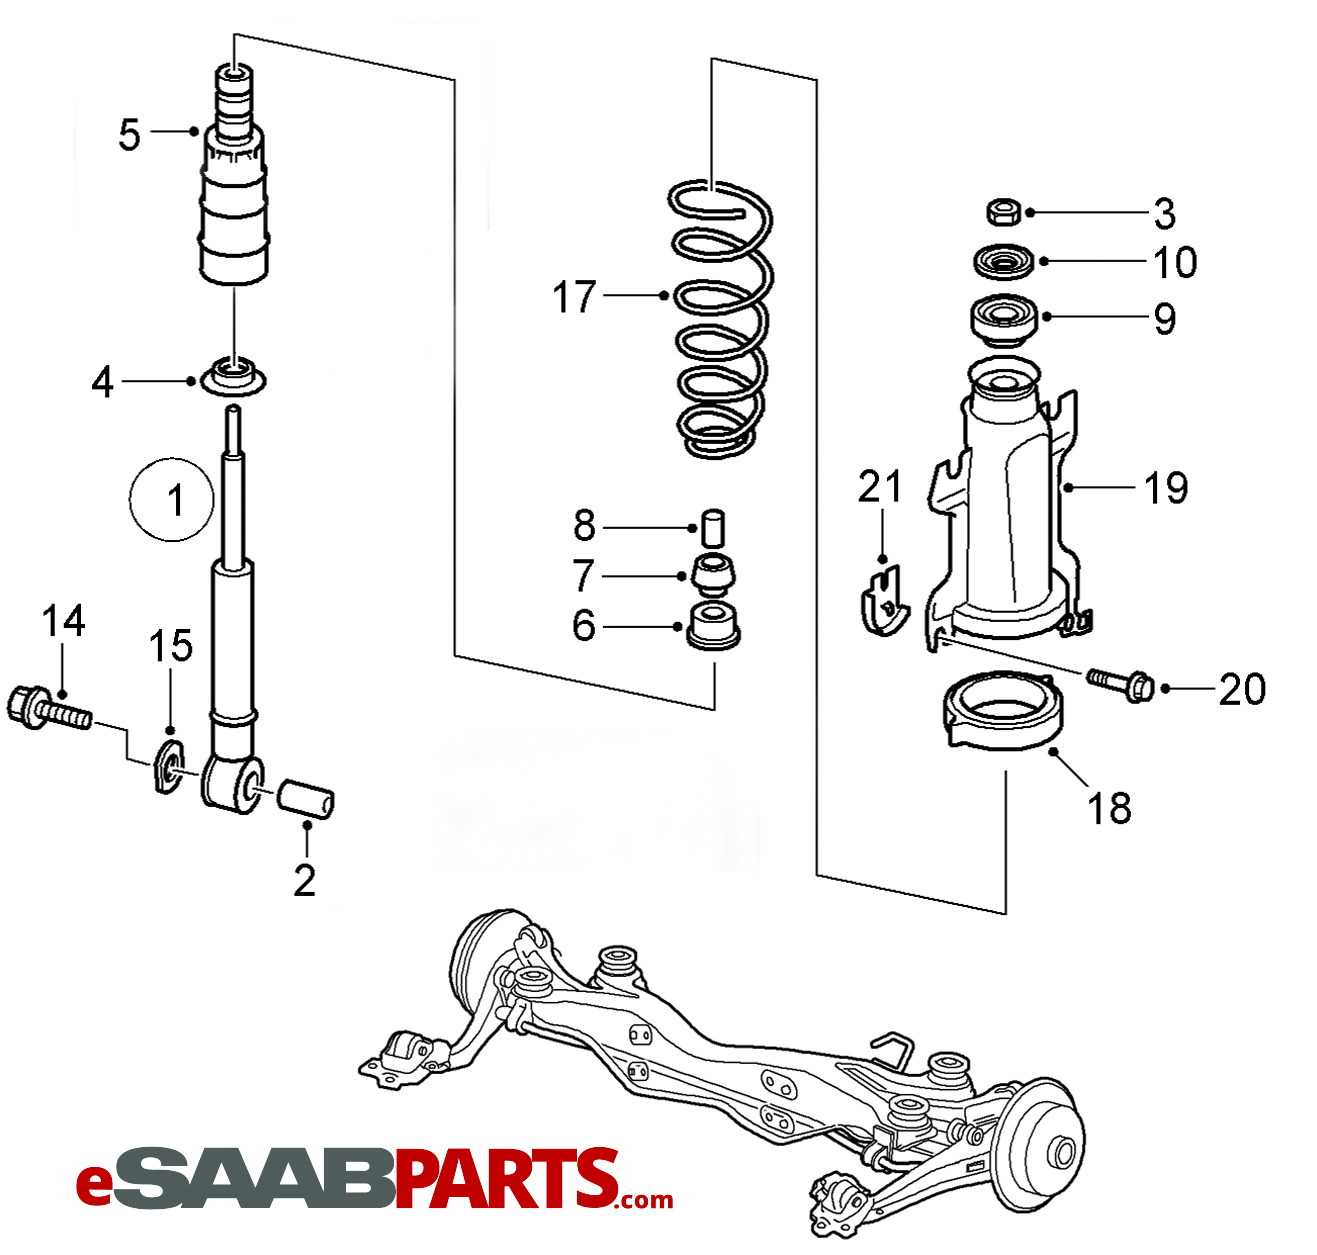 esaabparts com saab 9 5 (9600) \u003e suspension \u0026 wheels parts 2003 saab 9-3 turbo saab 93 air con wiring diagram wiring